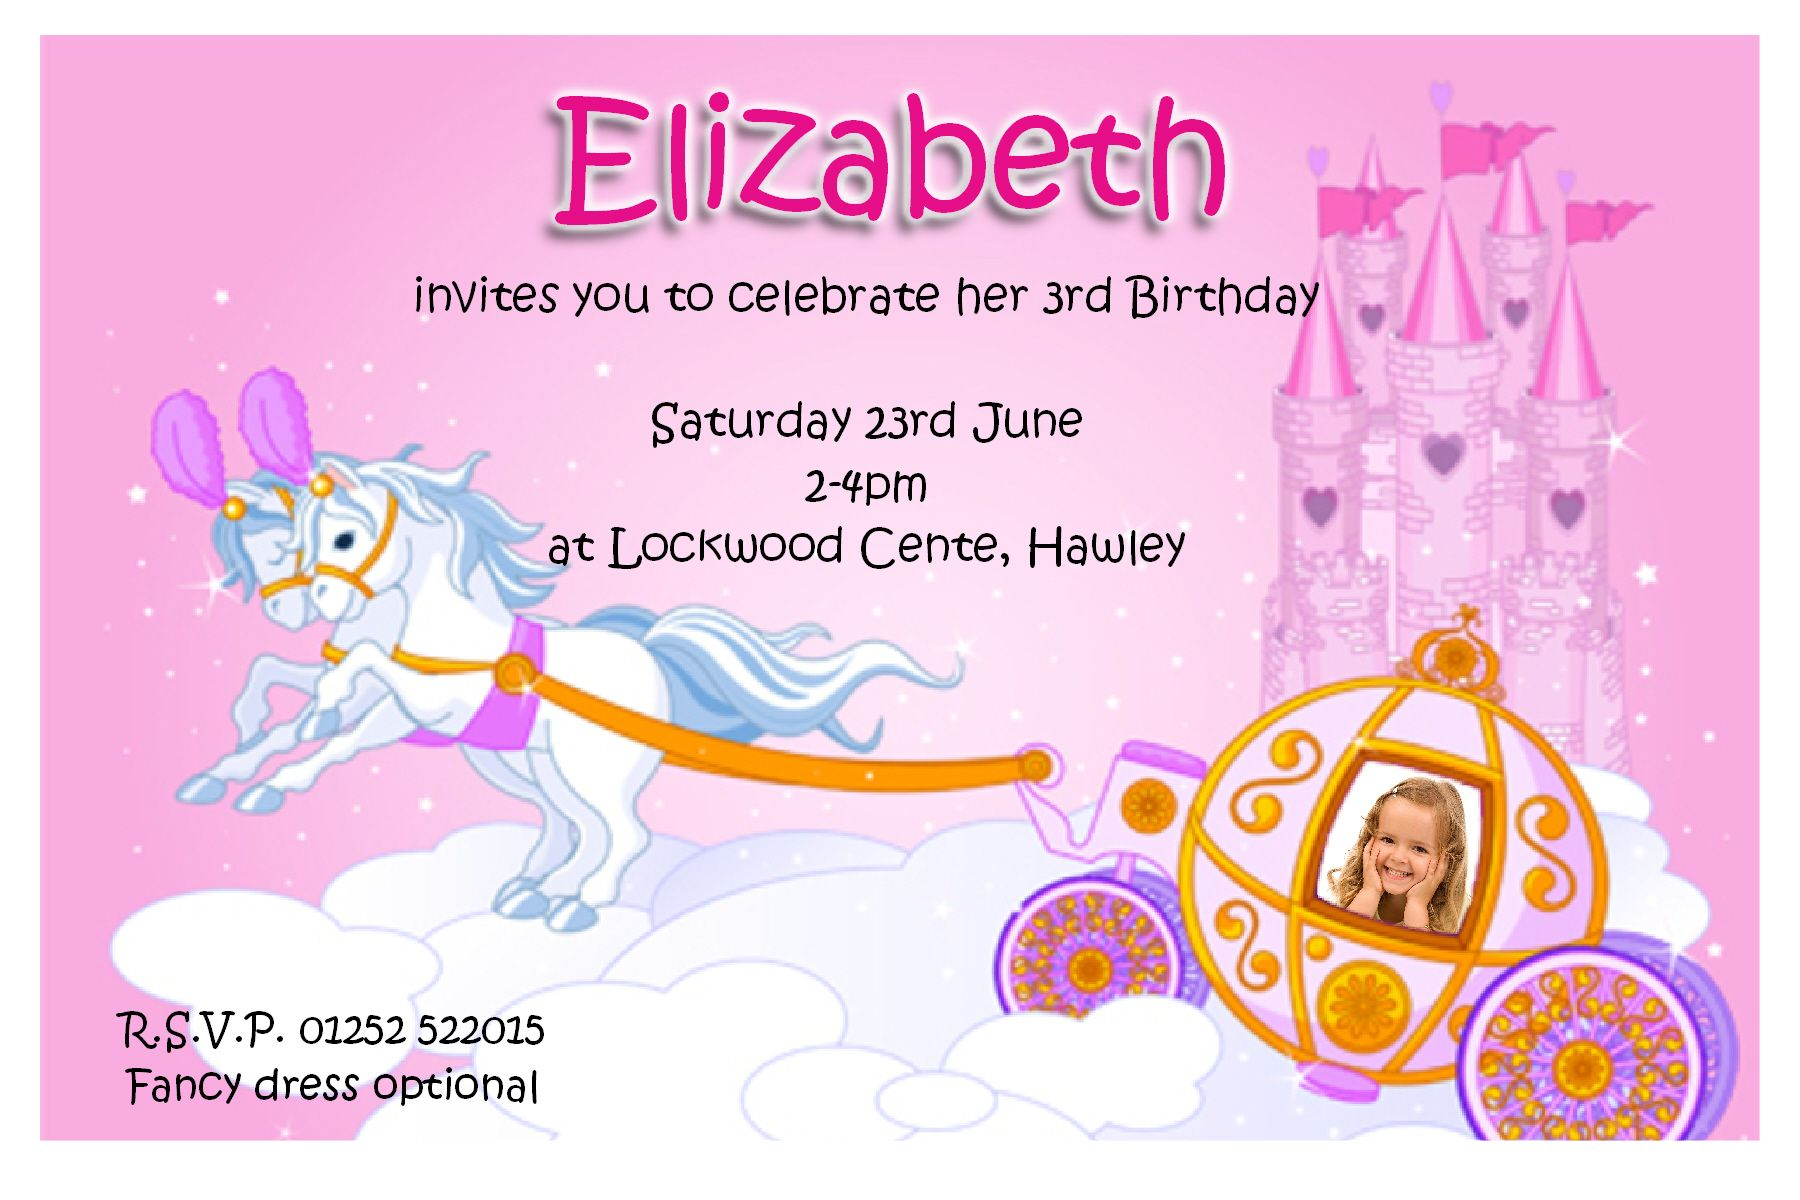 free invitation cards for birthday party ; great-ideas-invitation-cards-for-birthday-party-modern-designing-free-detail-giftbox-clipart-ornament-pink-color